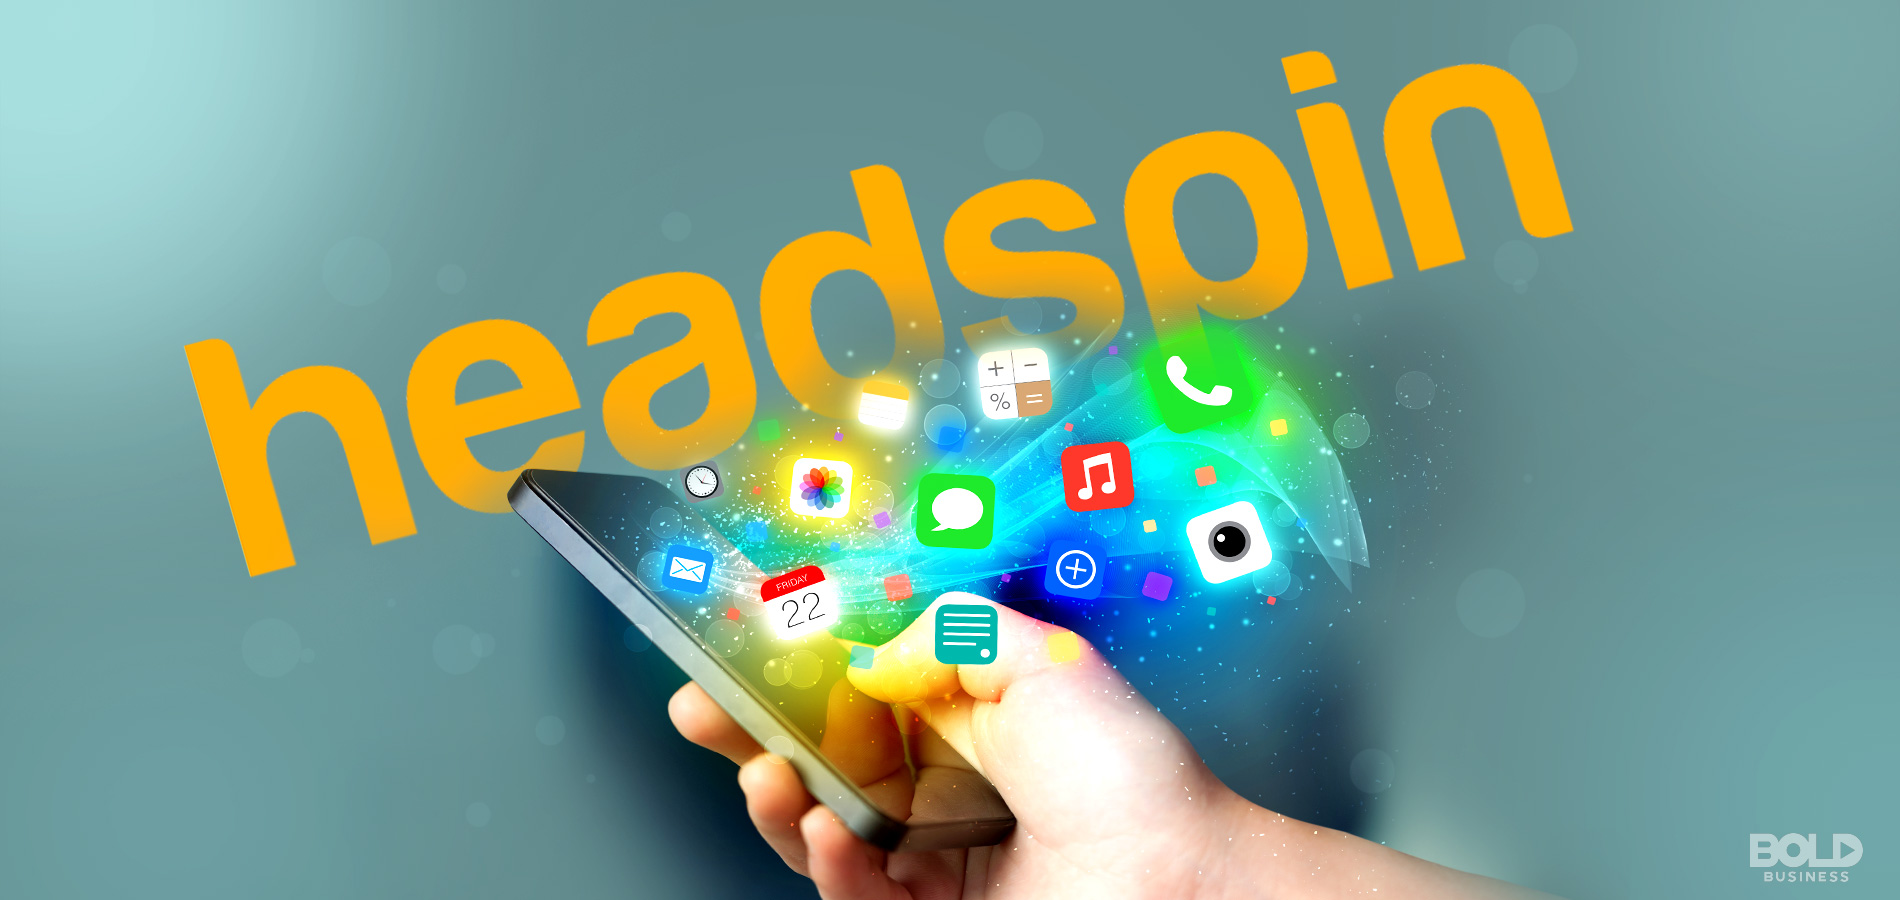 Headspin Inc. logo with apps coming out of the smartphone